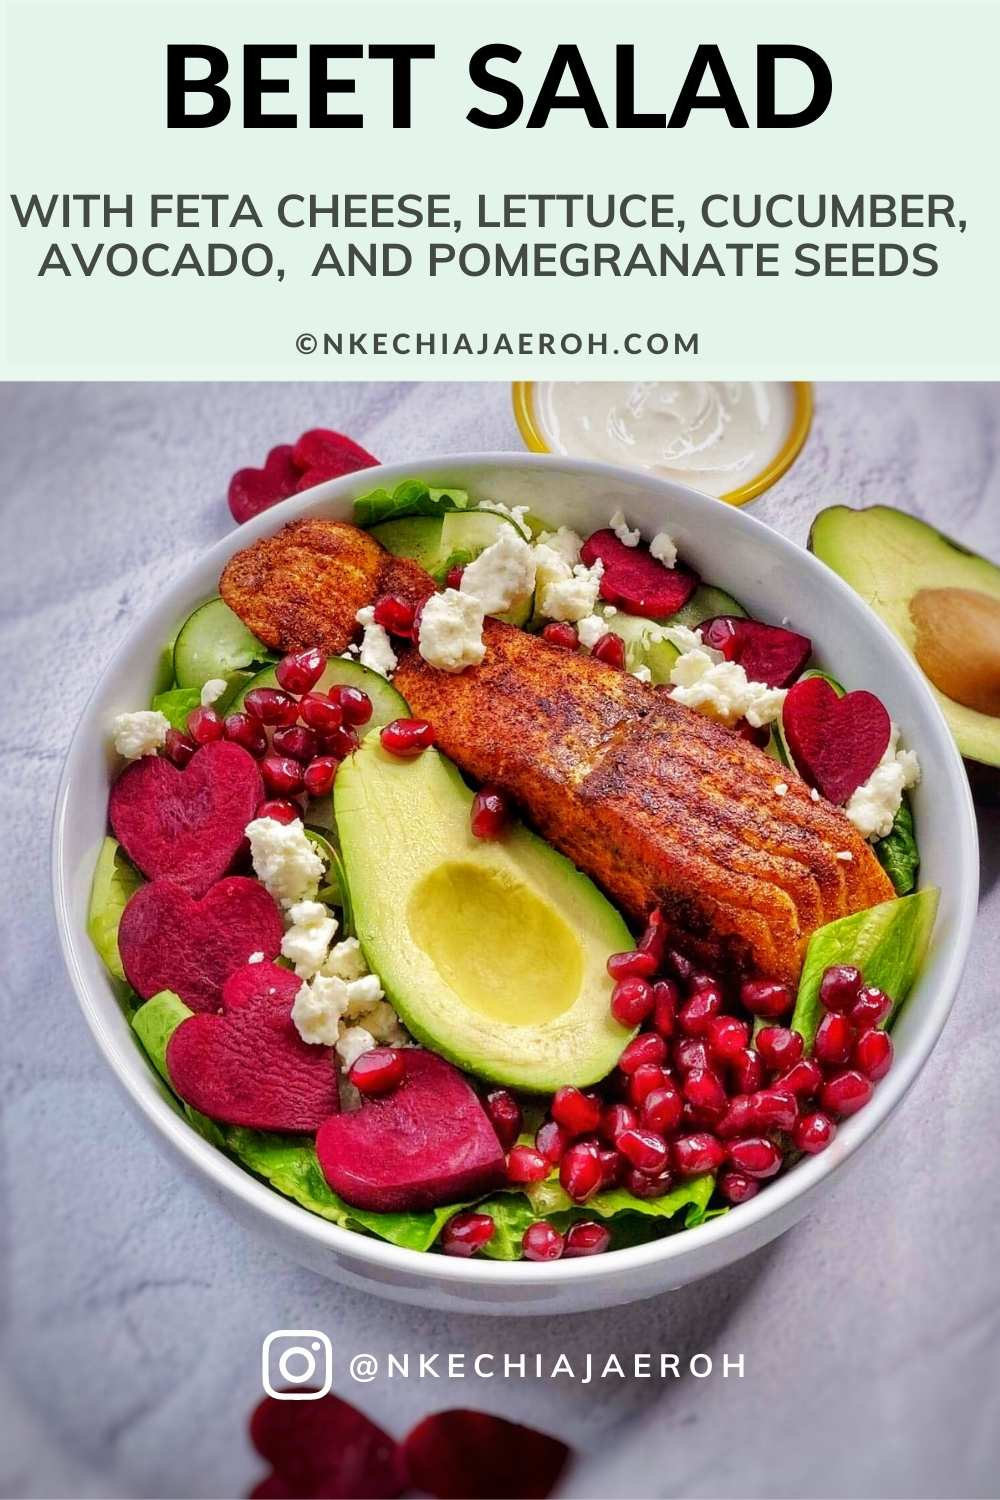 Easy to make raw beet salad with feta cheese, loaded with lettuce, cucumber, avocado, and salmon; serve with creamy yogurt dressing and top with your favorite things! I added pomegranate seeds, and it was perfect; the best part is that this recipe takes less than 15 minutes to put together. This heart-healthy beet salad is a dream!#Beet #beetroot #beetsalad #beetrootsalad #hearthealthysalad #beetsaladandfetacheese #beetrootandfetacheese #healthysaladrecipe